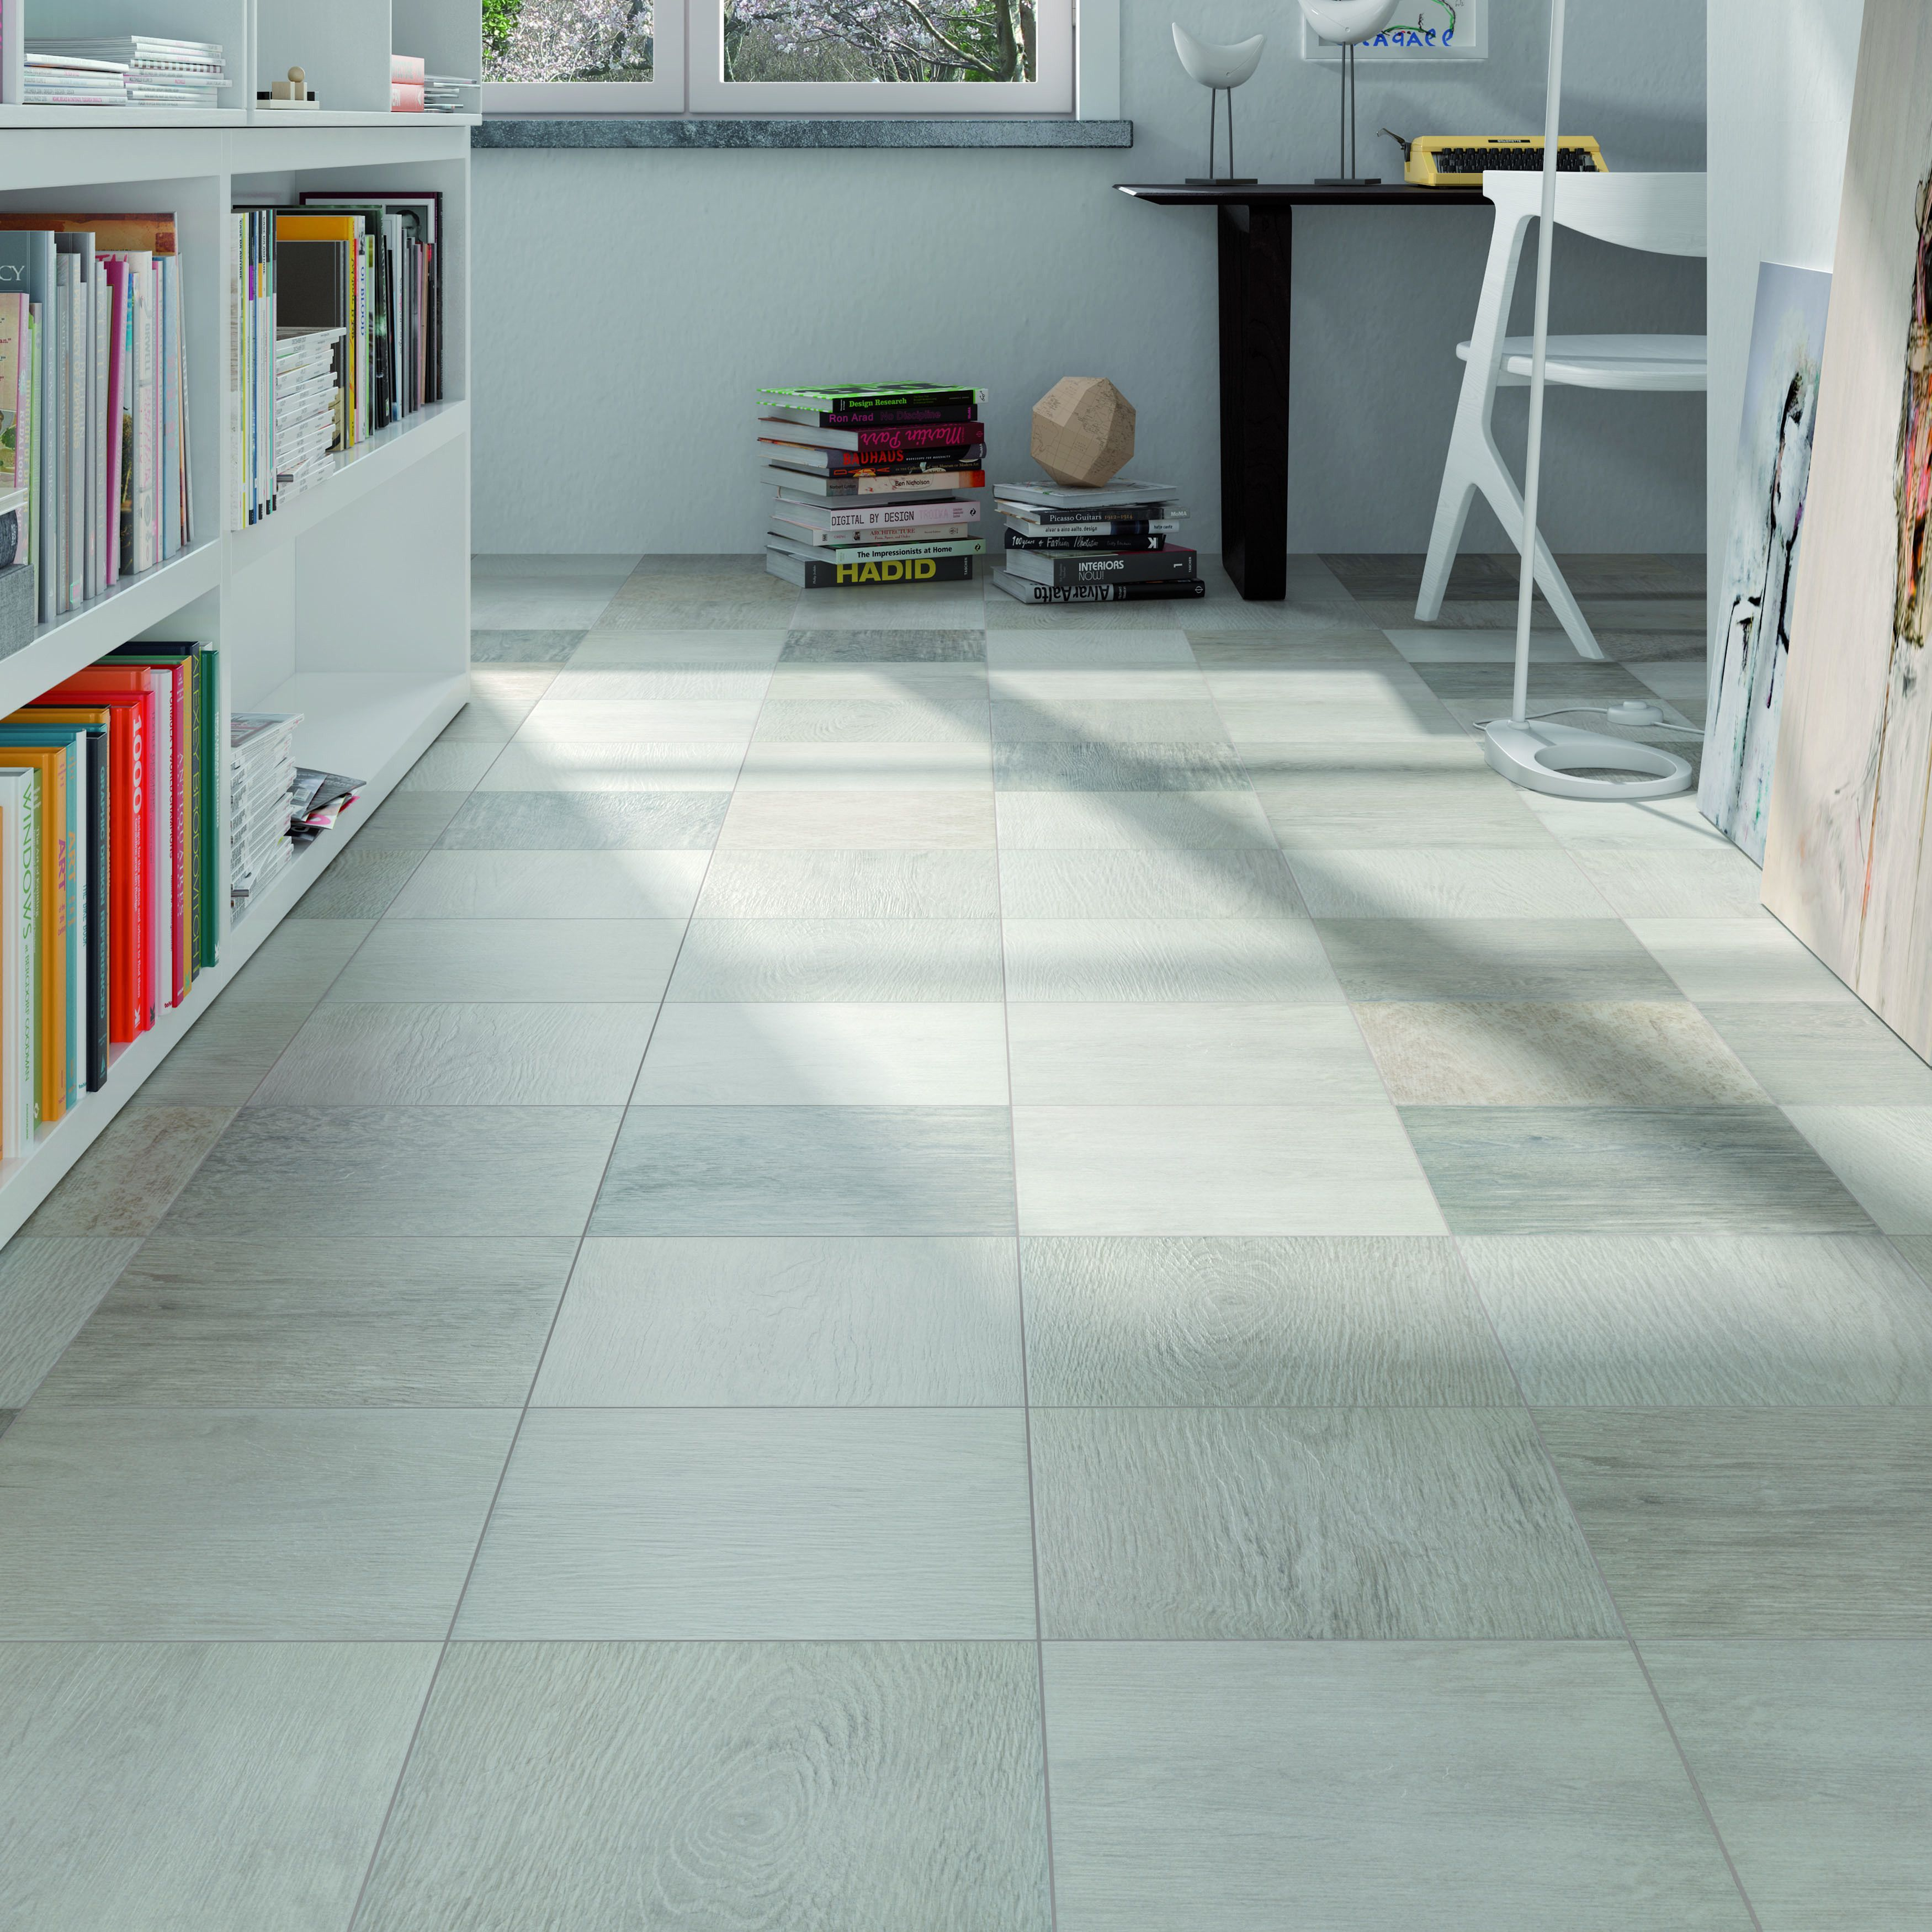 The SomerTile 9.5x9.5-inch Woodland Silver Porcelain Floor and Wall ...